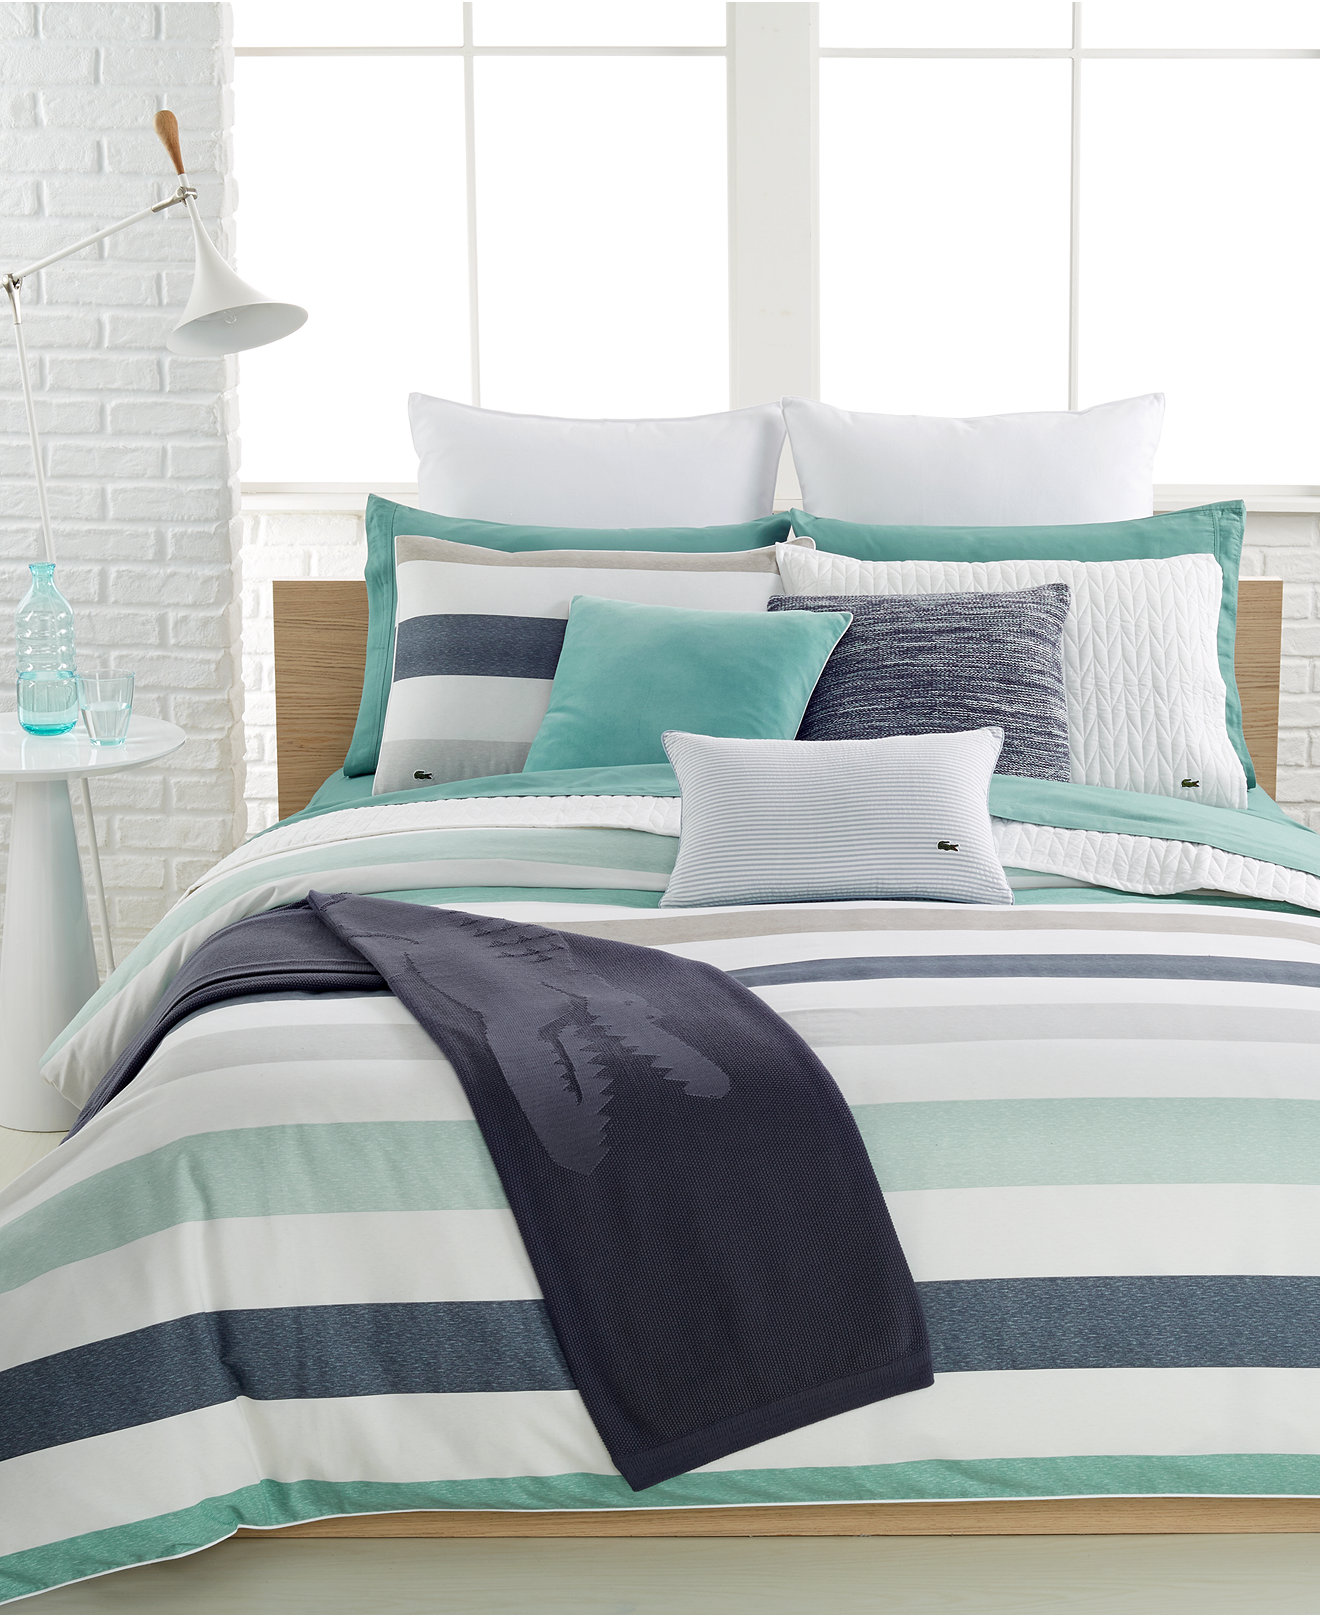 Flannel Duvet Cover | Queen Duvet Covers | Western Duvet Covers Queen